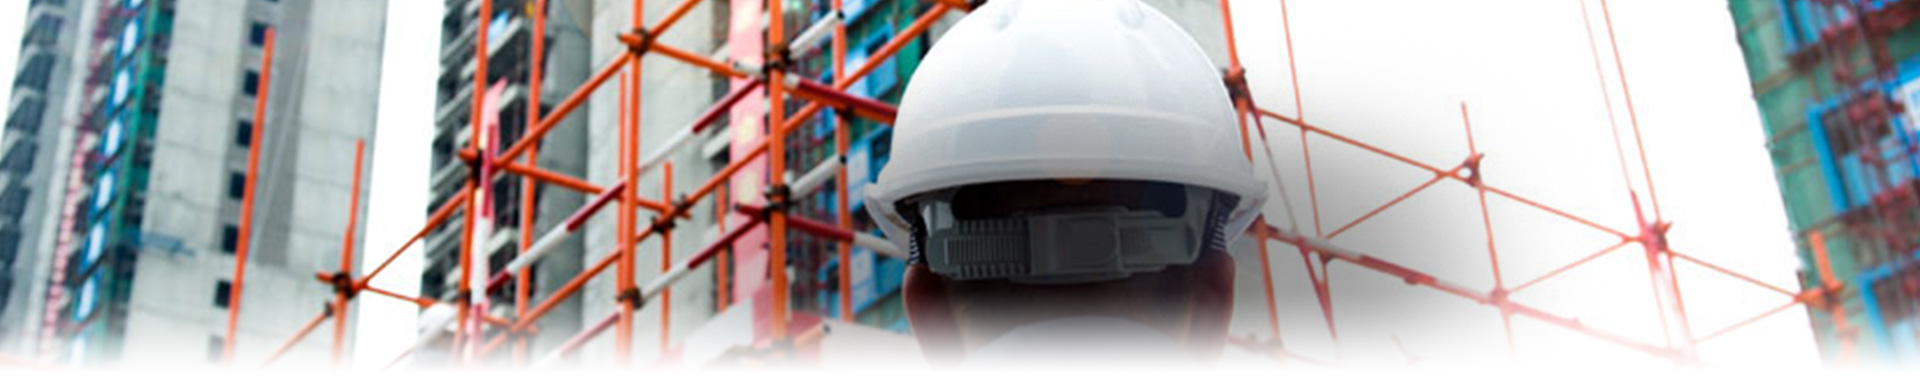 Personal Safety Devices | Open Discussion for Building Industry Topics | Forum